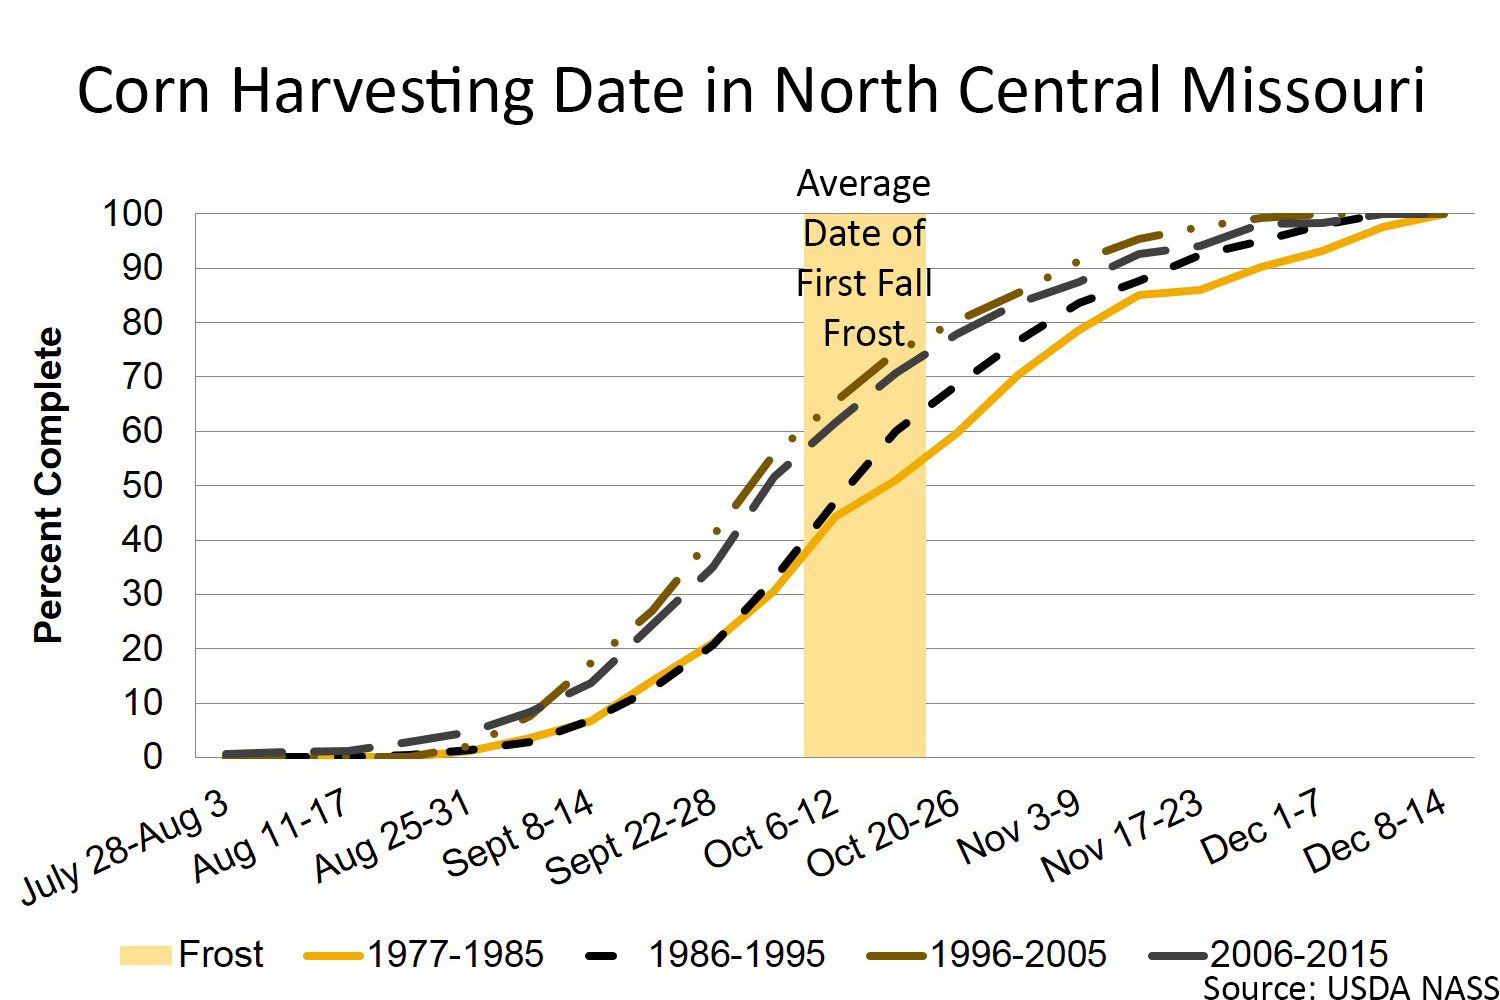 Corn harvesting date in north central Missouri chart